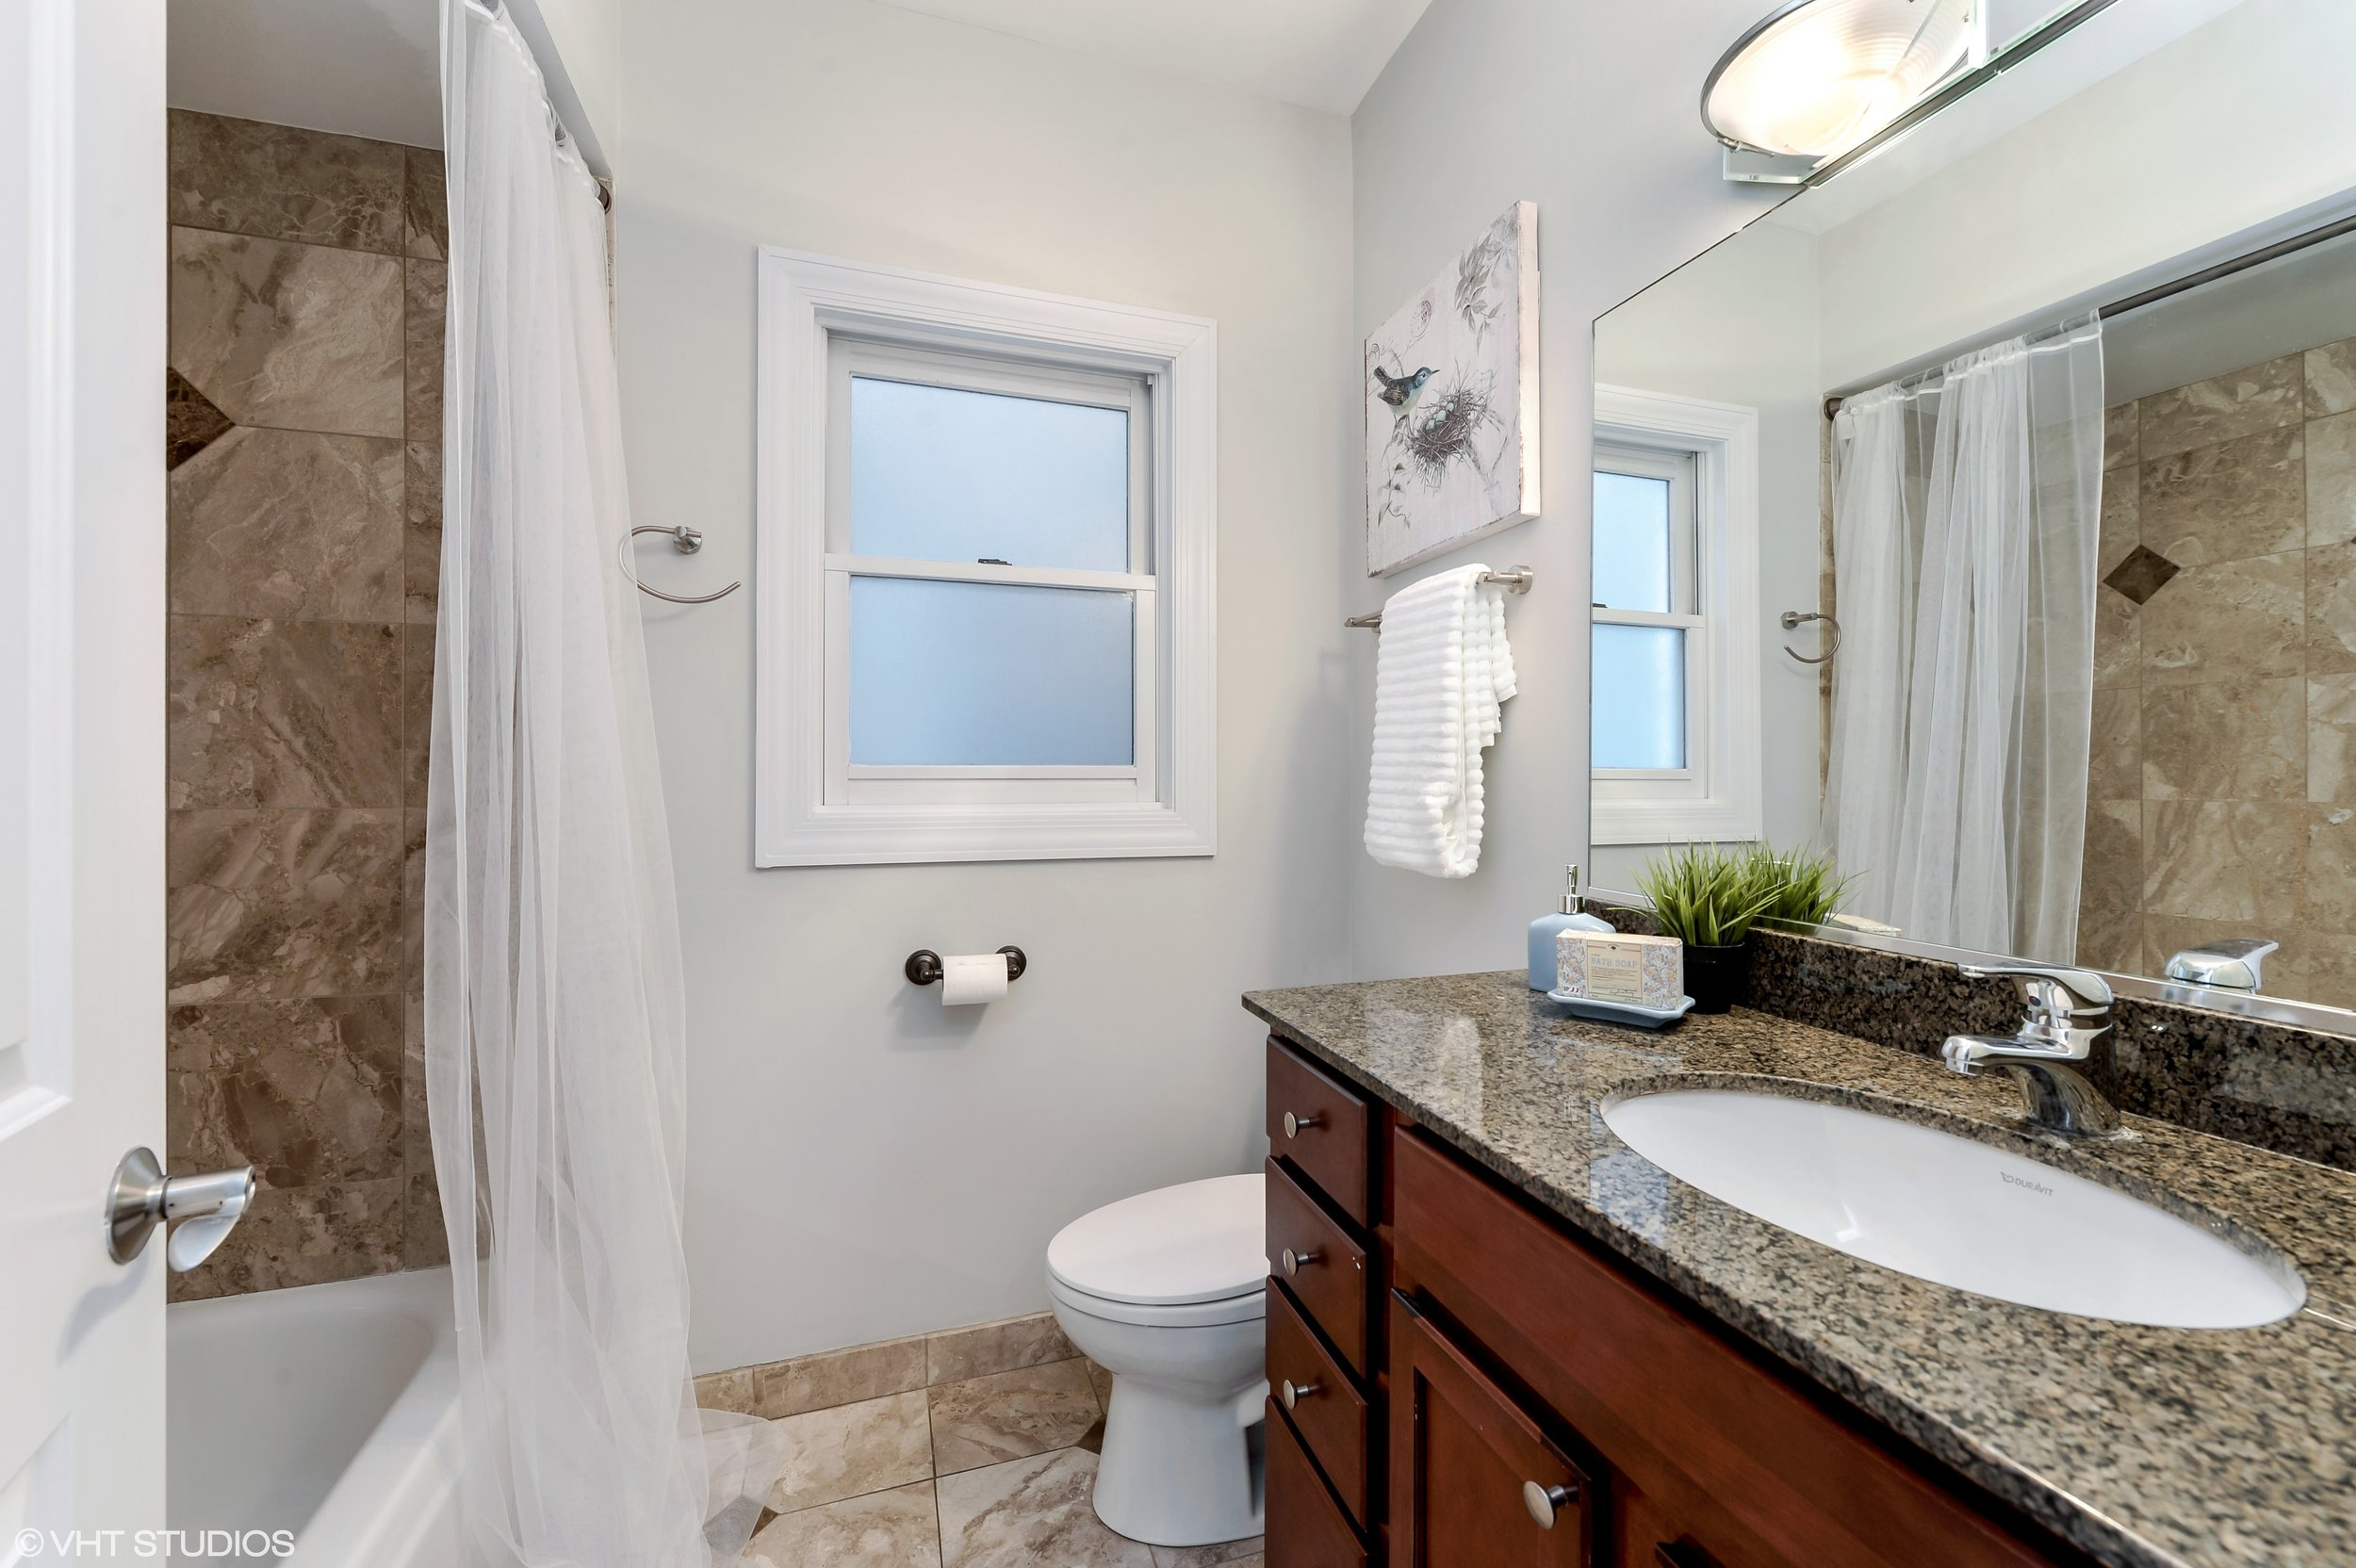 17_942NWoodStreet_Unit1_9_2ndBathroom_HiRes.jpg